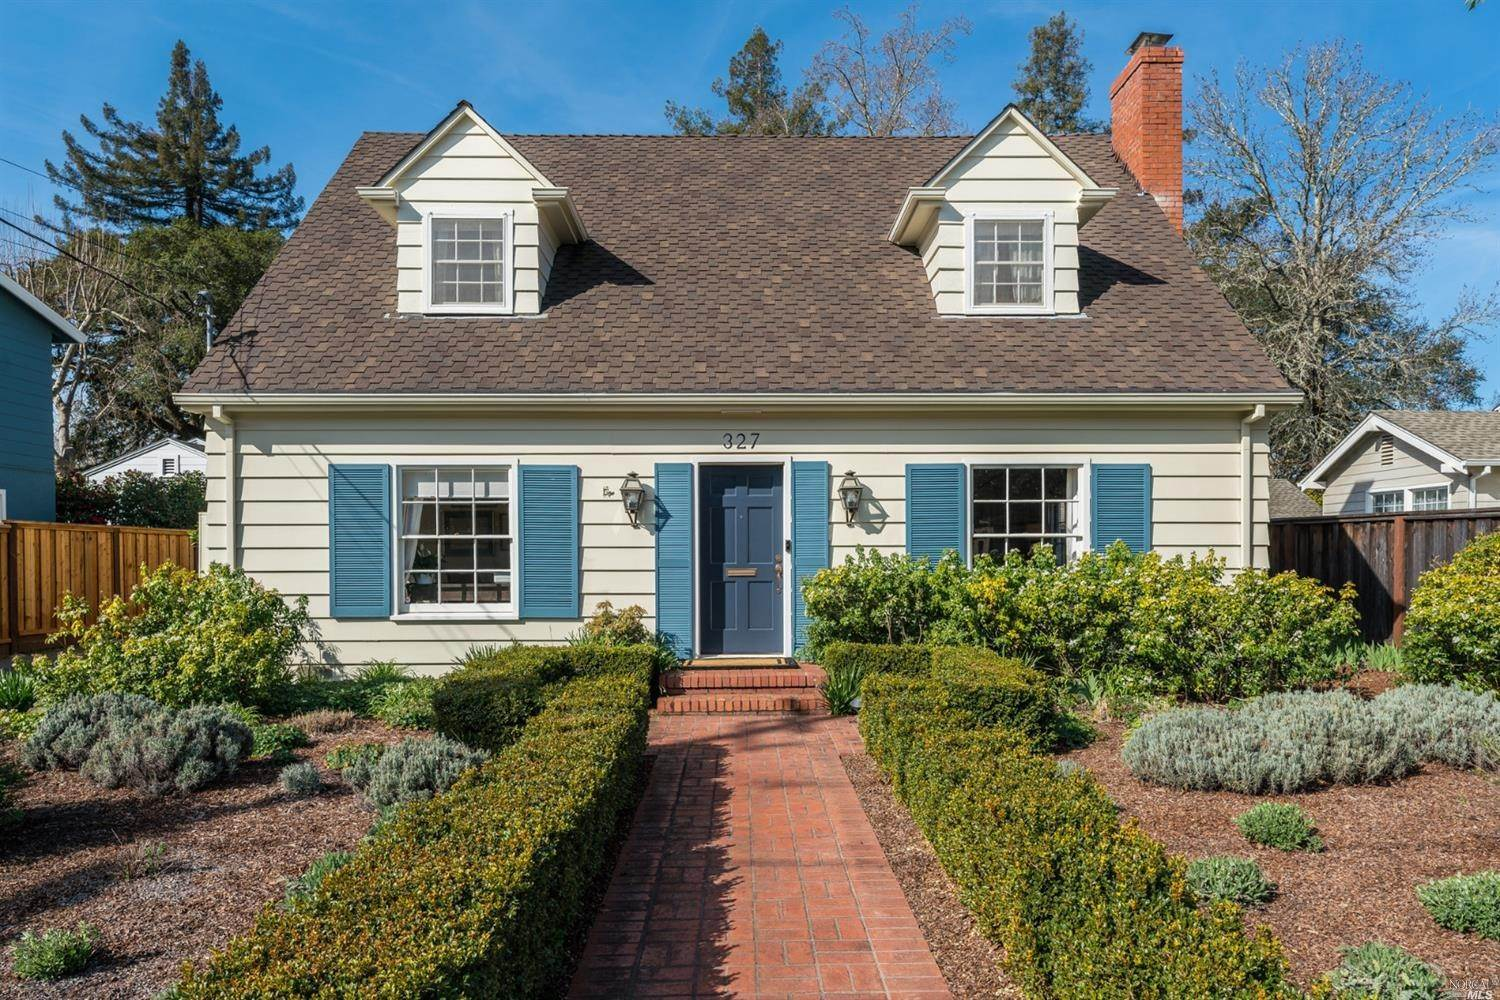 Single Family Homes for Sale at 327 2nd Street, Healdsburg Healdsburg, California 95448 United States